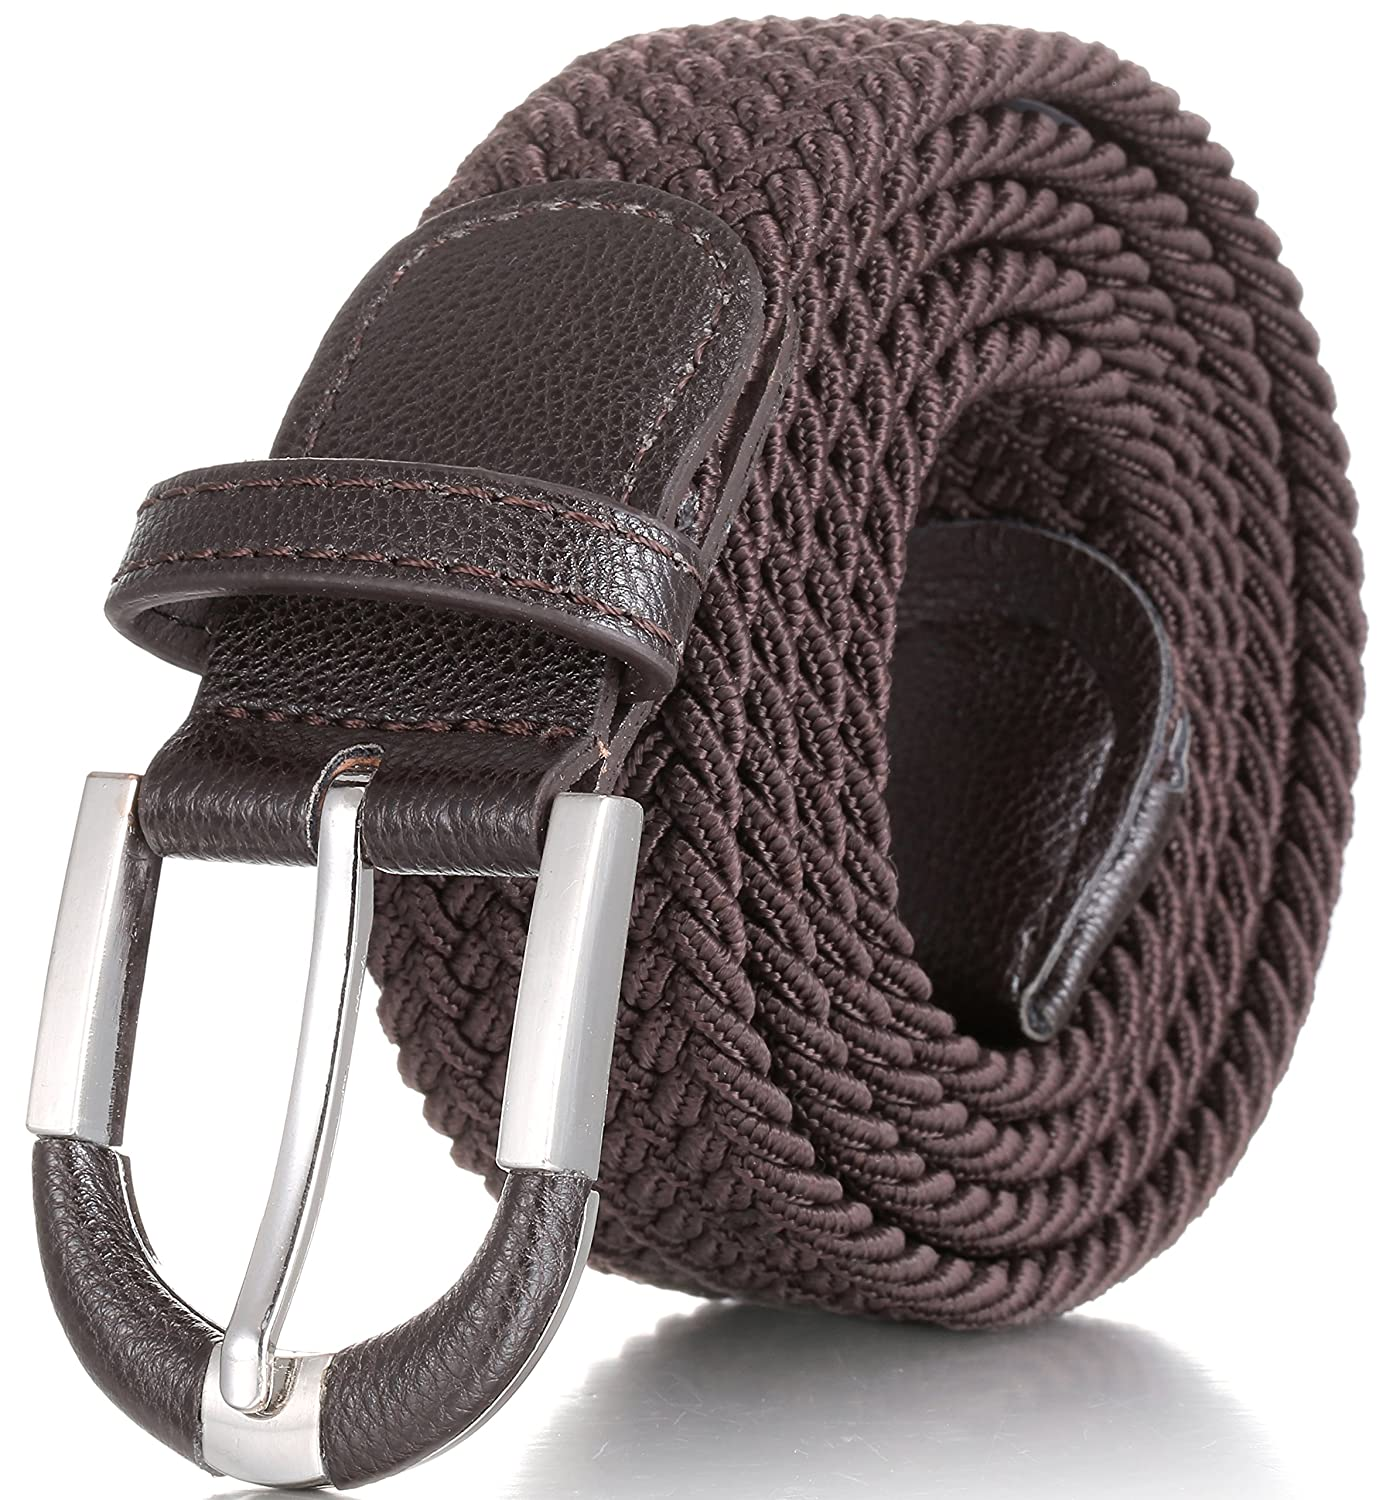 Marino Woven Stretch Belt for Men and Women - Webbed Fabric Belt - Braided Elastic Belt WB024